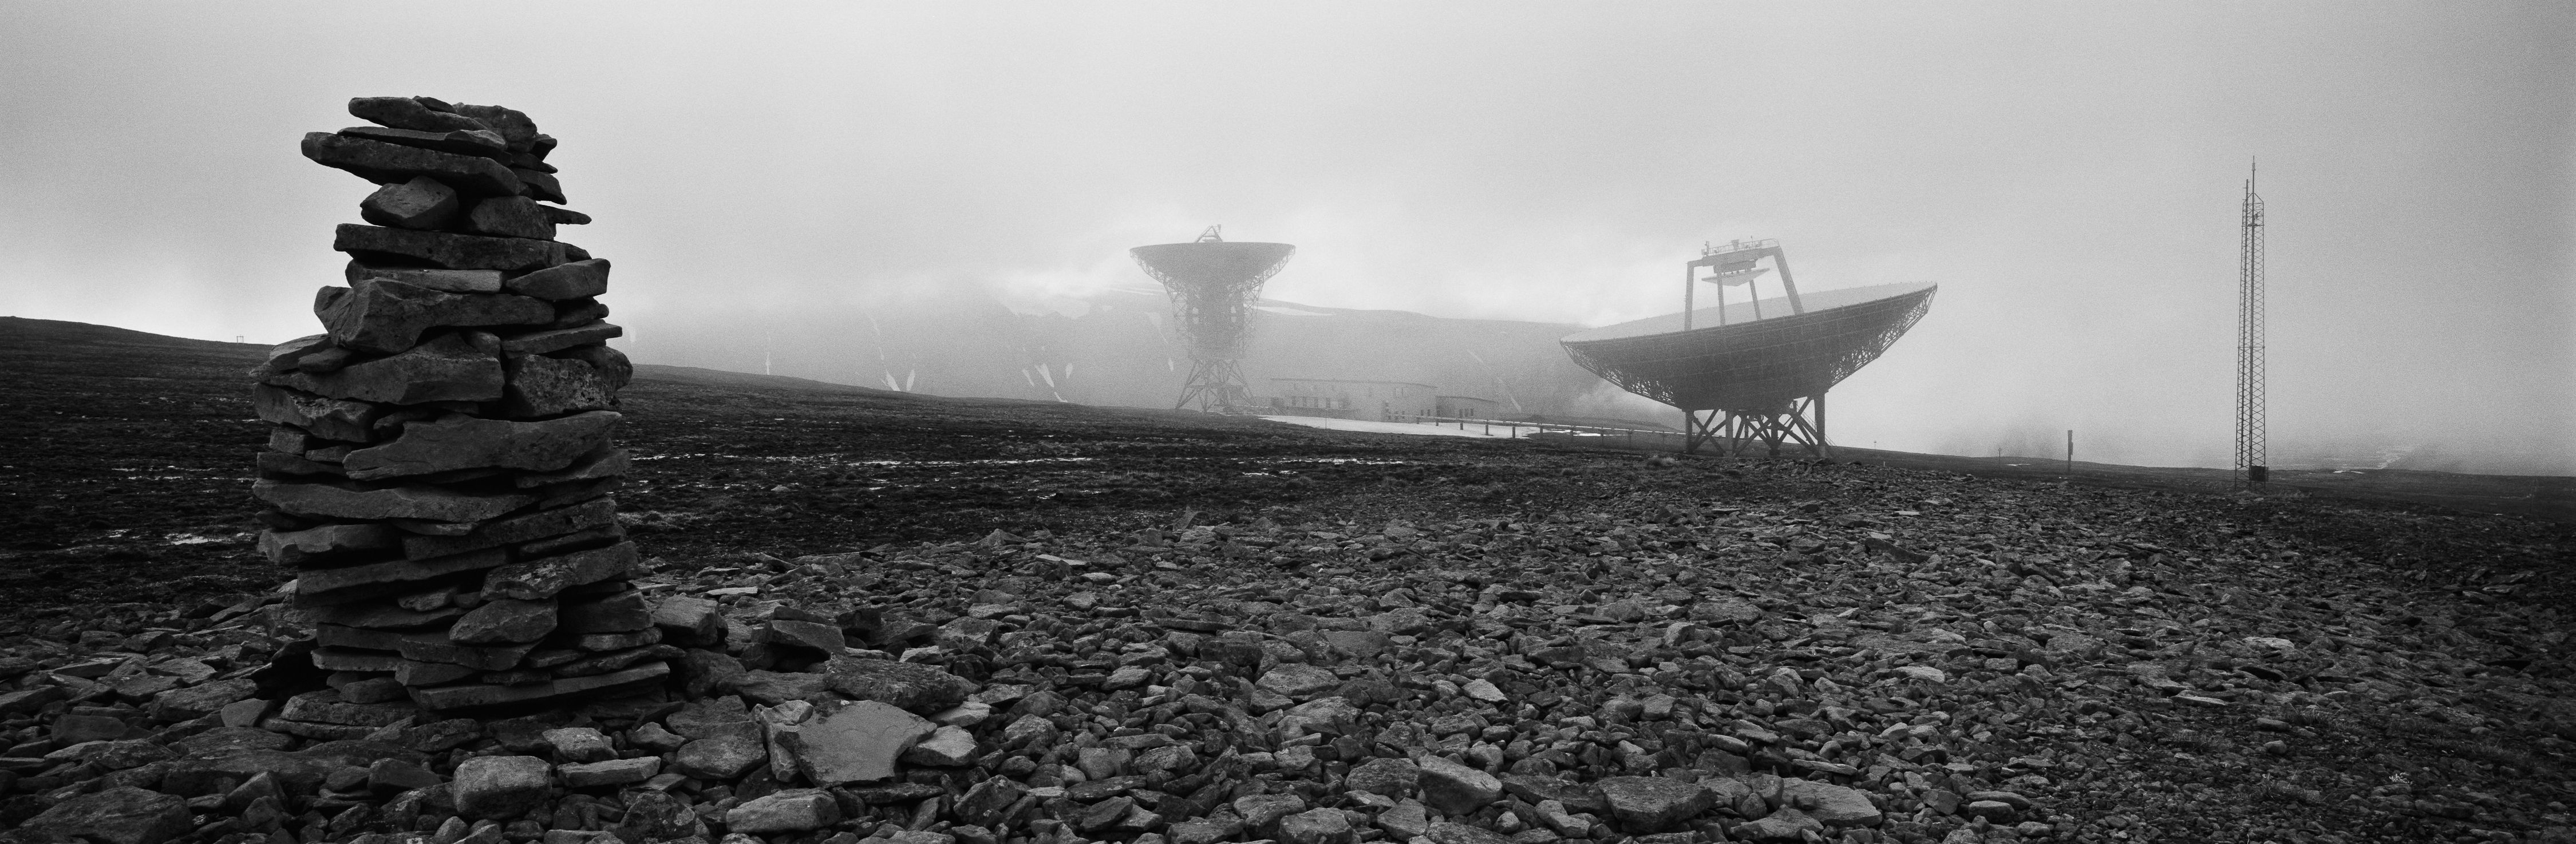 Untitled 6, Arctic Technology, Spitsbergen - Christian Houge - Photography